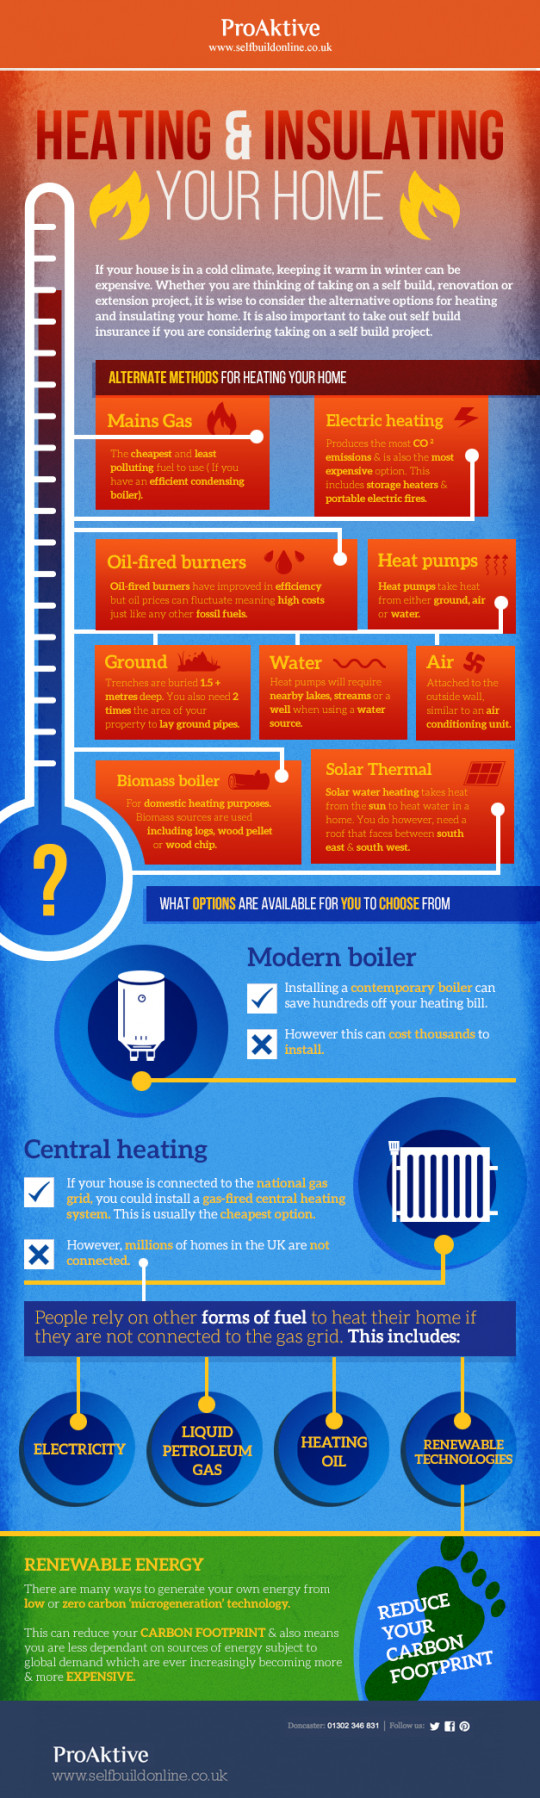 Heating and Insulating Your Self Build Home